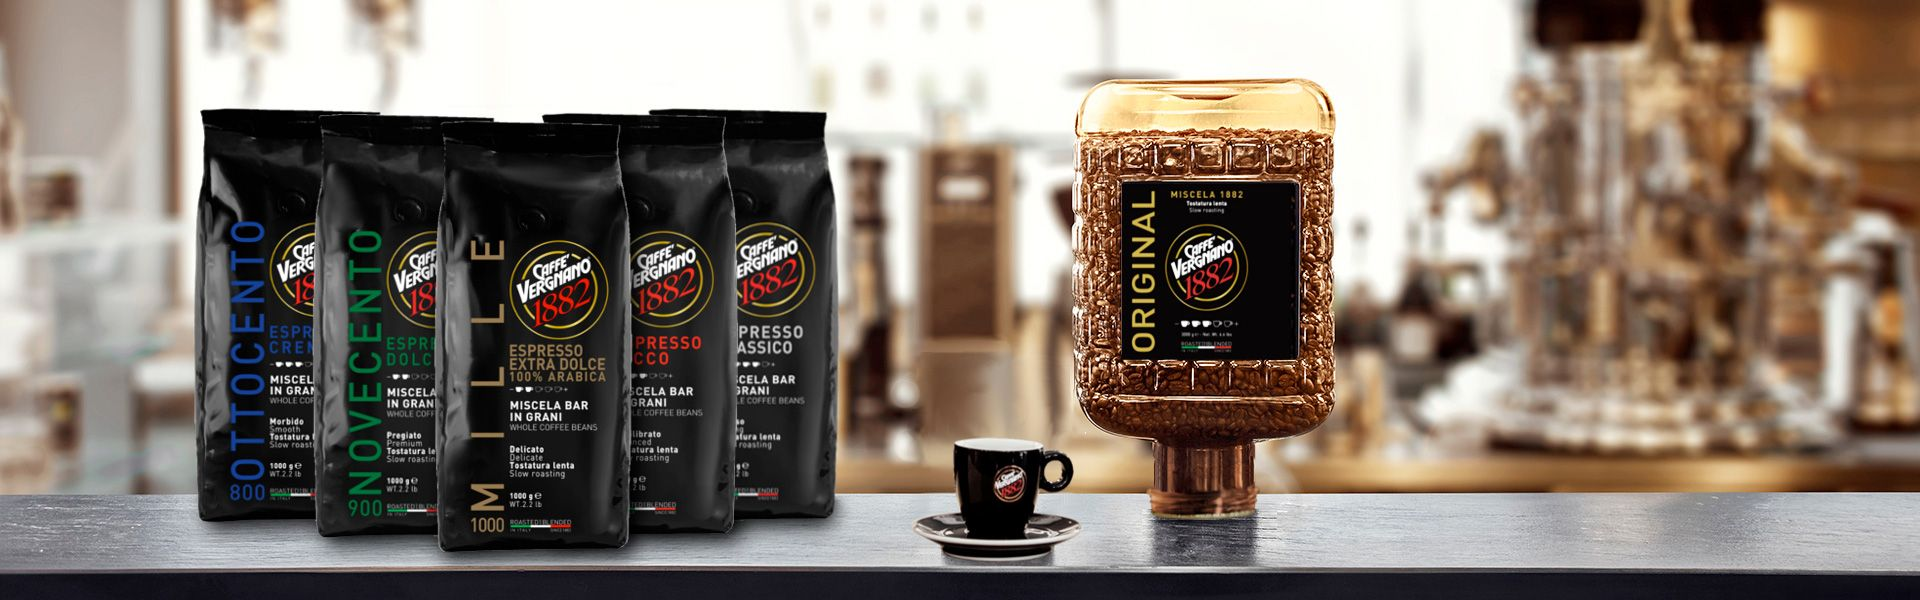 COFFEE BAR PRODUCTS